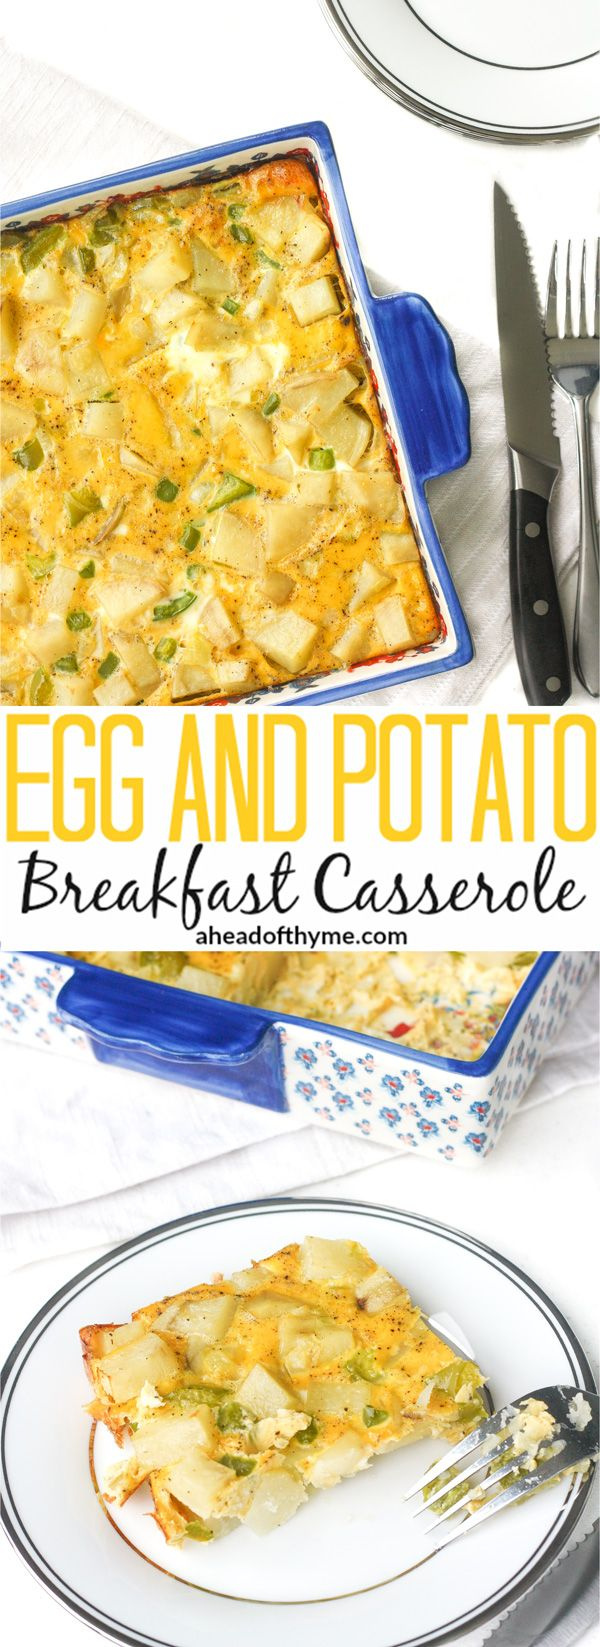 Egg and Potato Breakfast Casserole: Whether you are feeding your own family or entertaining a large number of guests, this vegetarian egg and potato breakfast casserole is a huge hit at brunch. | aheadofthyme.com via @aheadofthyme